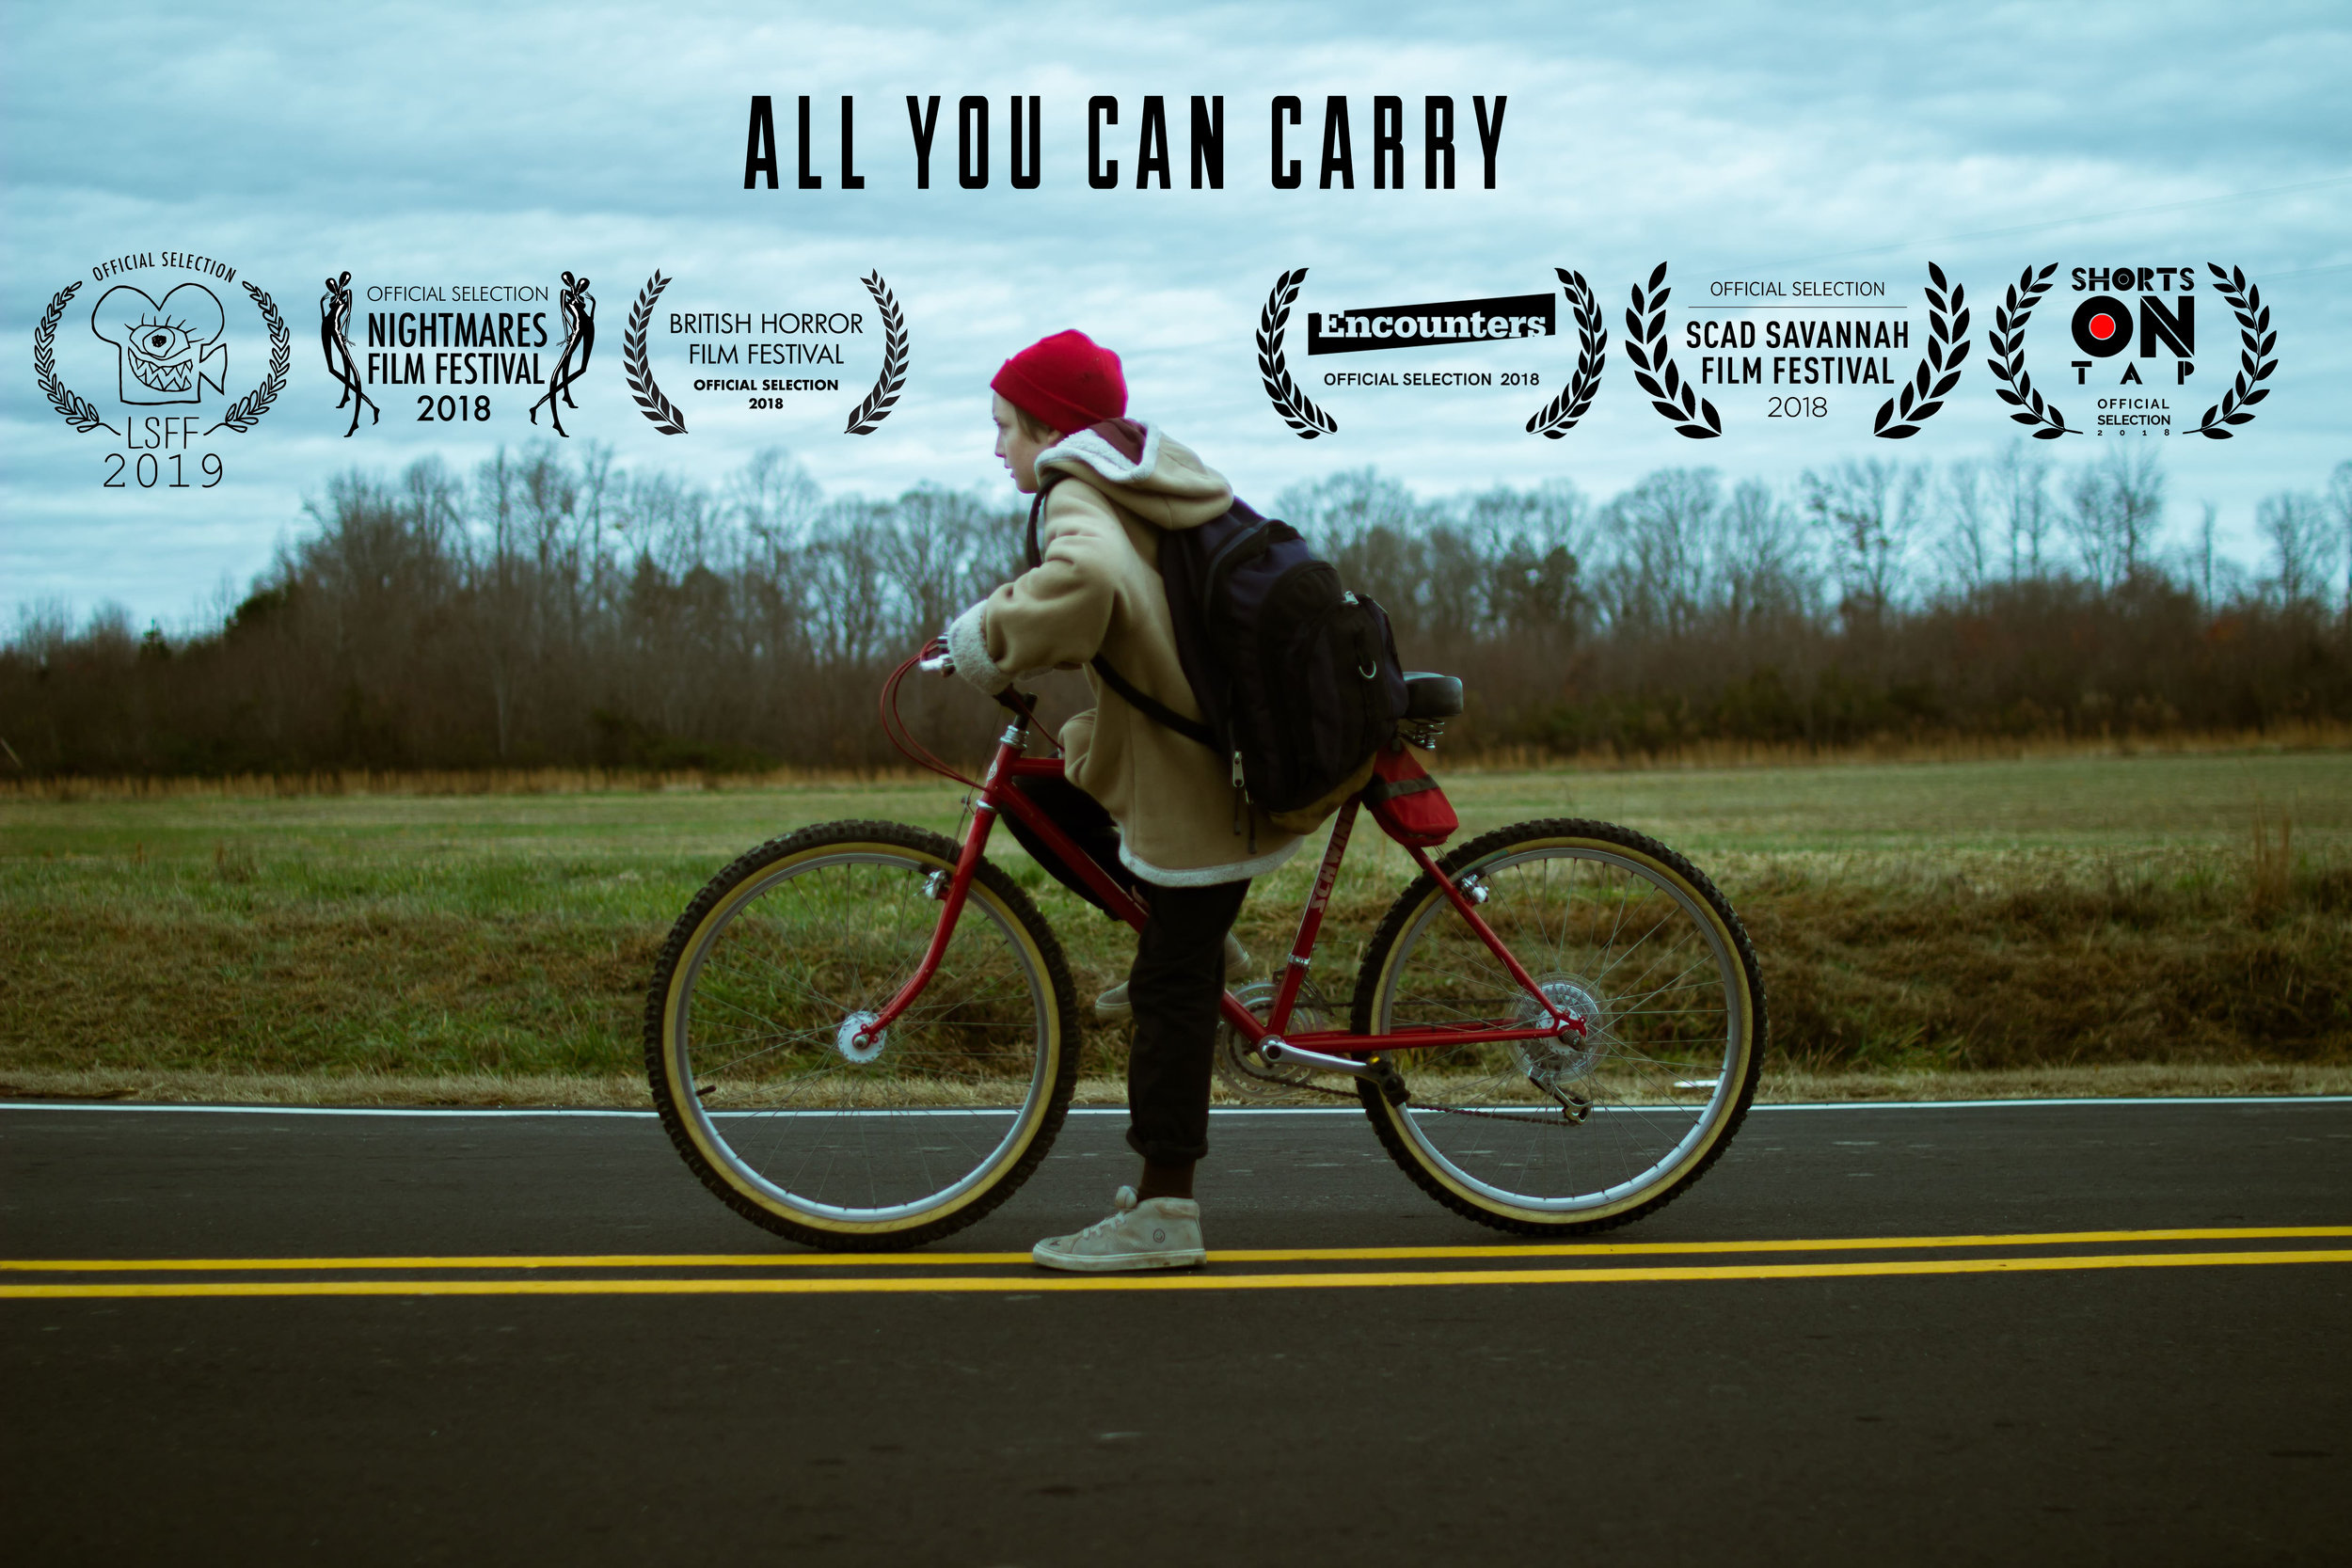 All You Can Carry - by Andrew Rose- Best Student Film Award - British Horror Film Festival 2018- SCAD Savannah Film Festival 2018- Encounters Film Festival 2018- Mixed in Dolby Atmos in Pinewood Studios